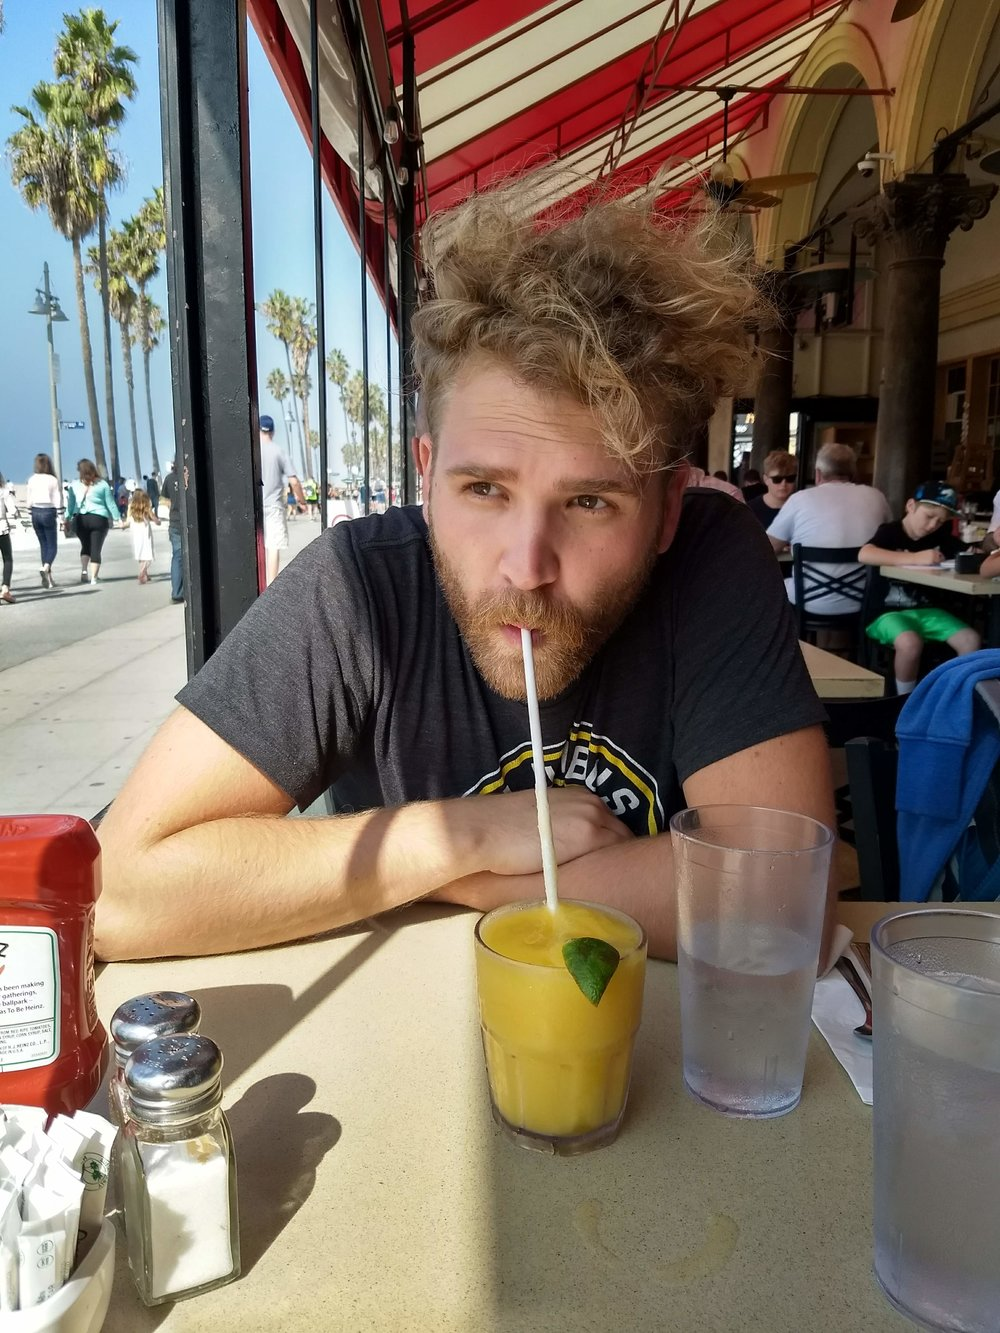 Eating at the Sidewalk Cafe on the Venice beach walkway! (Doing the non-creepy people watching)